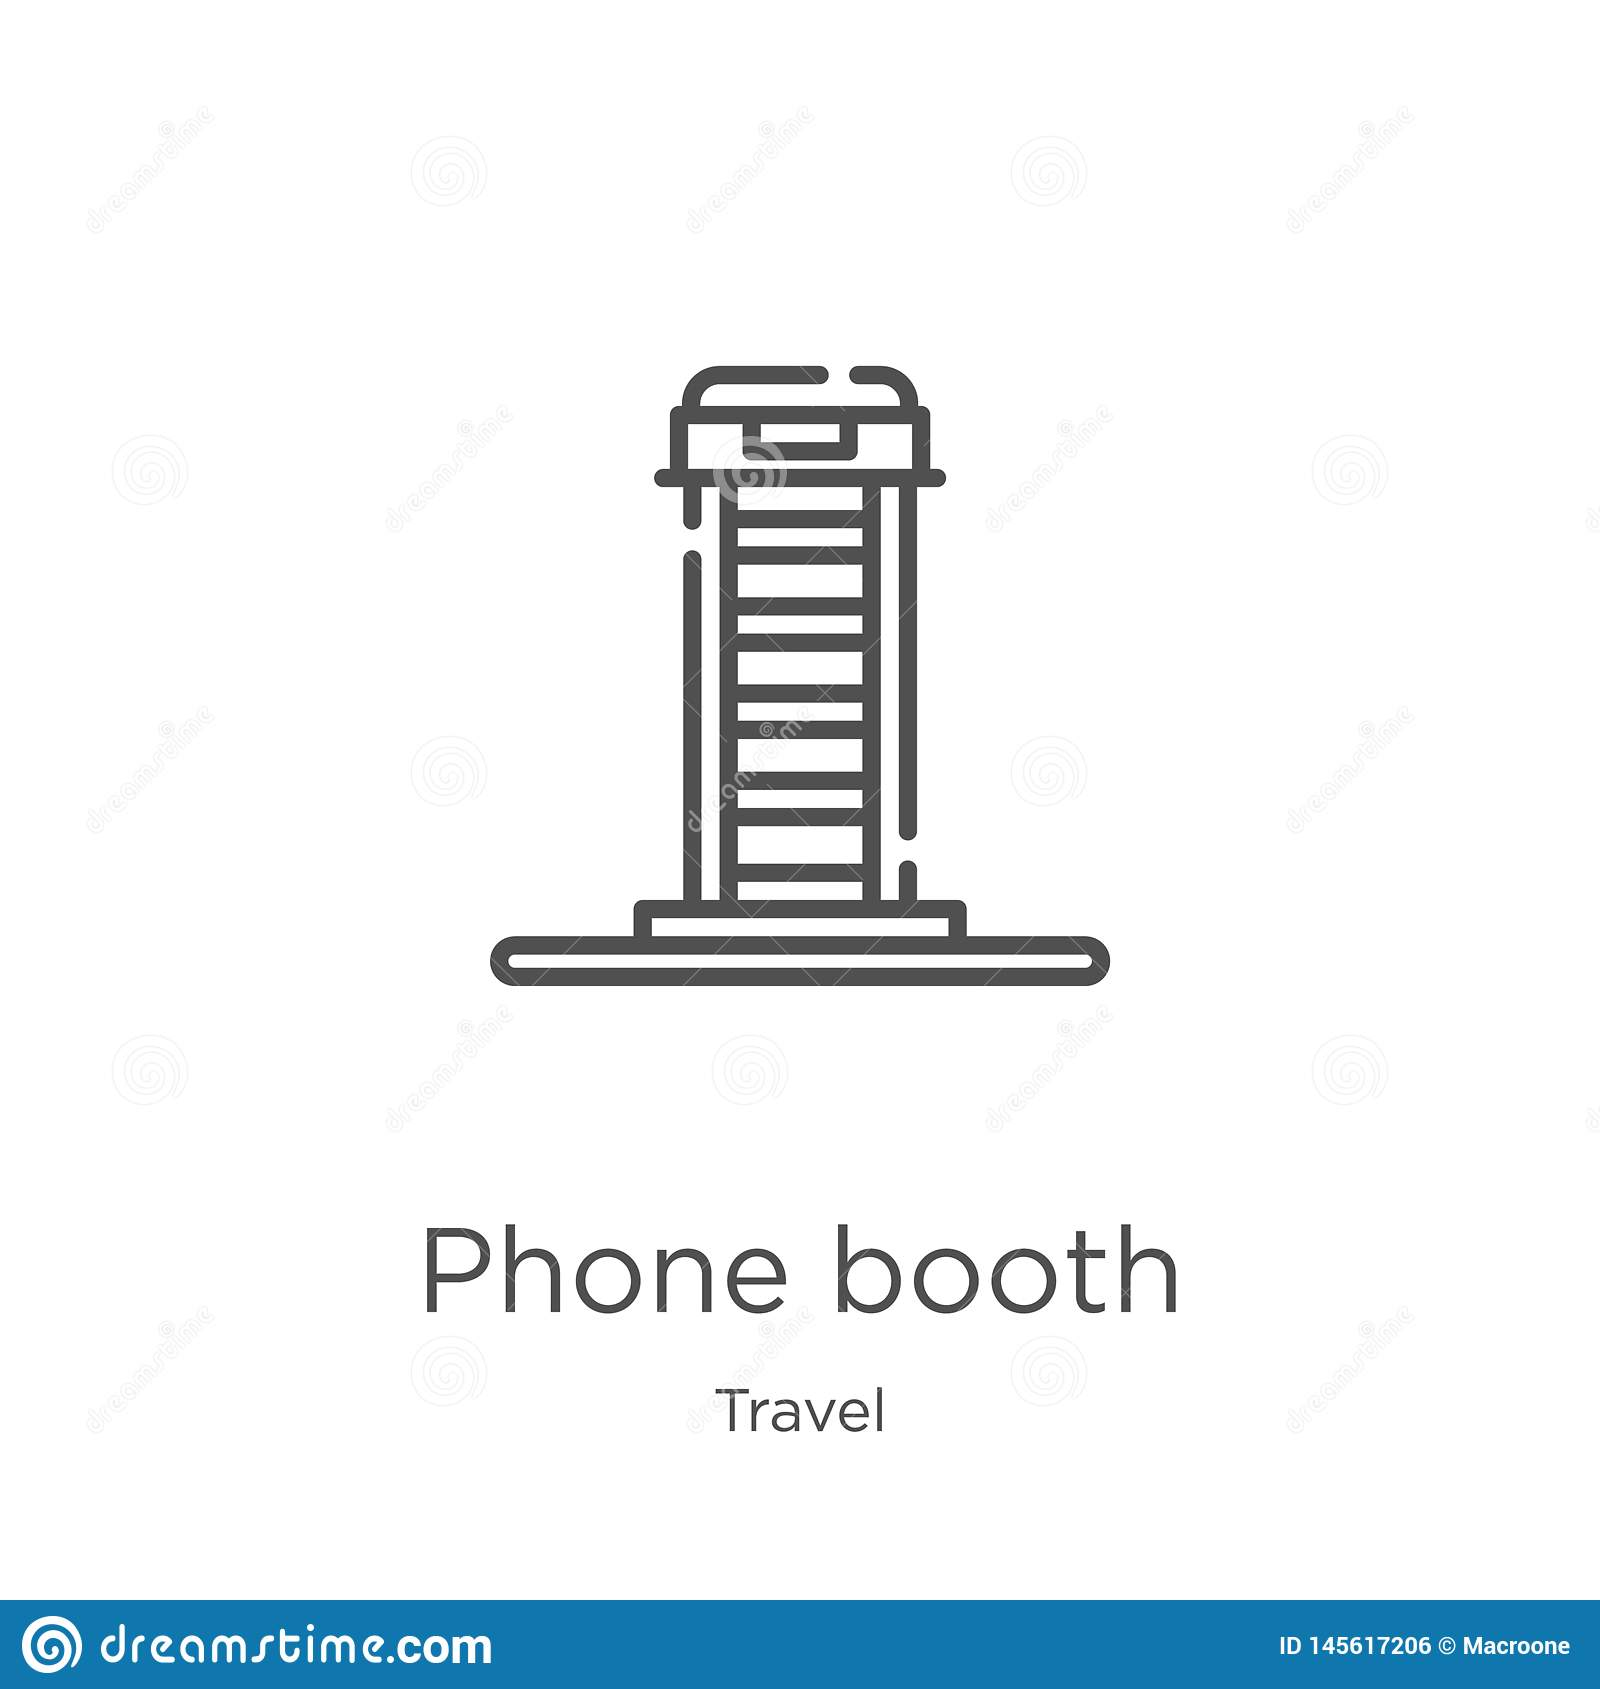 phone booth icon vector from travel collection. Thin line phone booth outline icon vector illustration. Outline, thin line phone